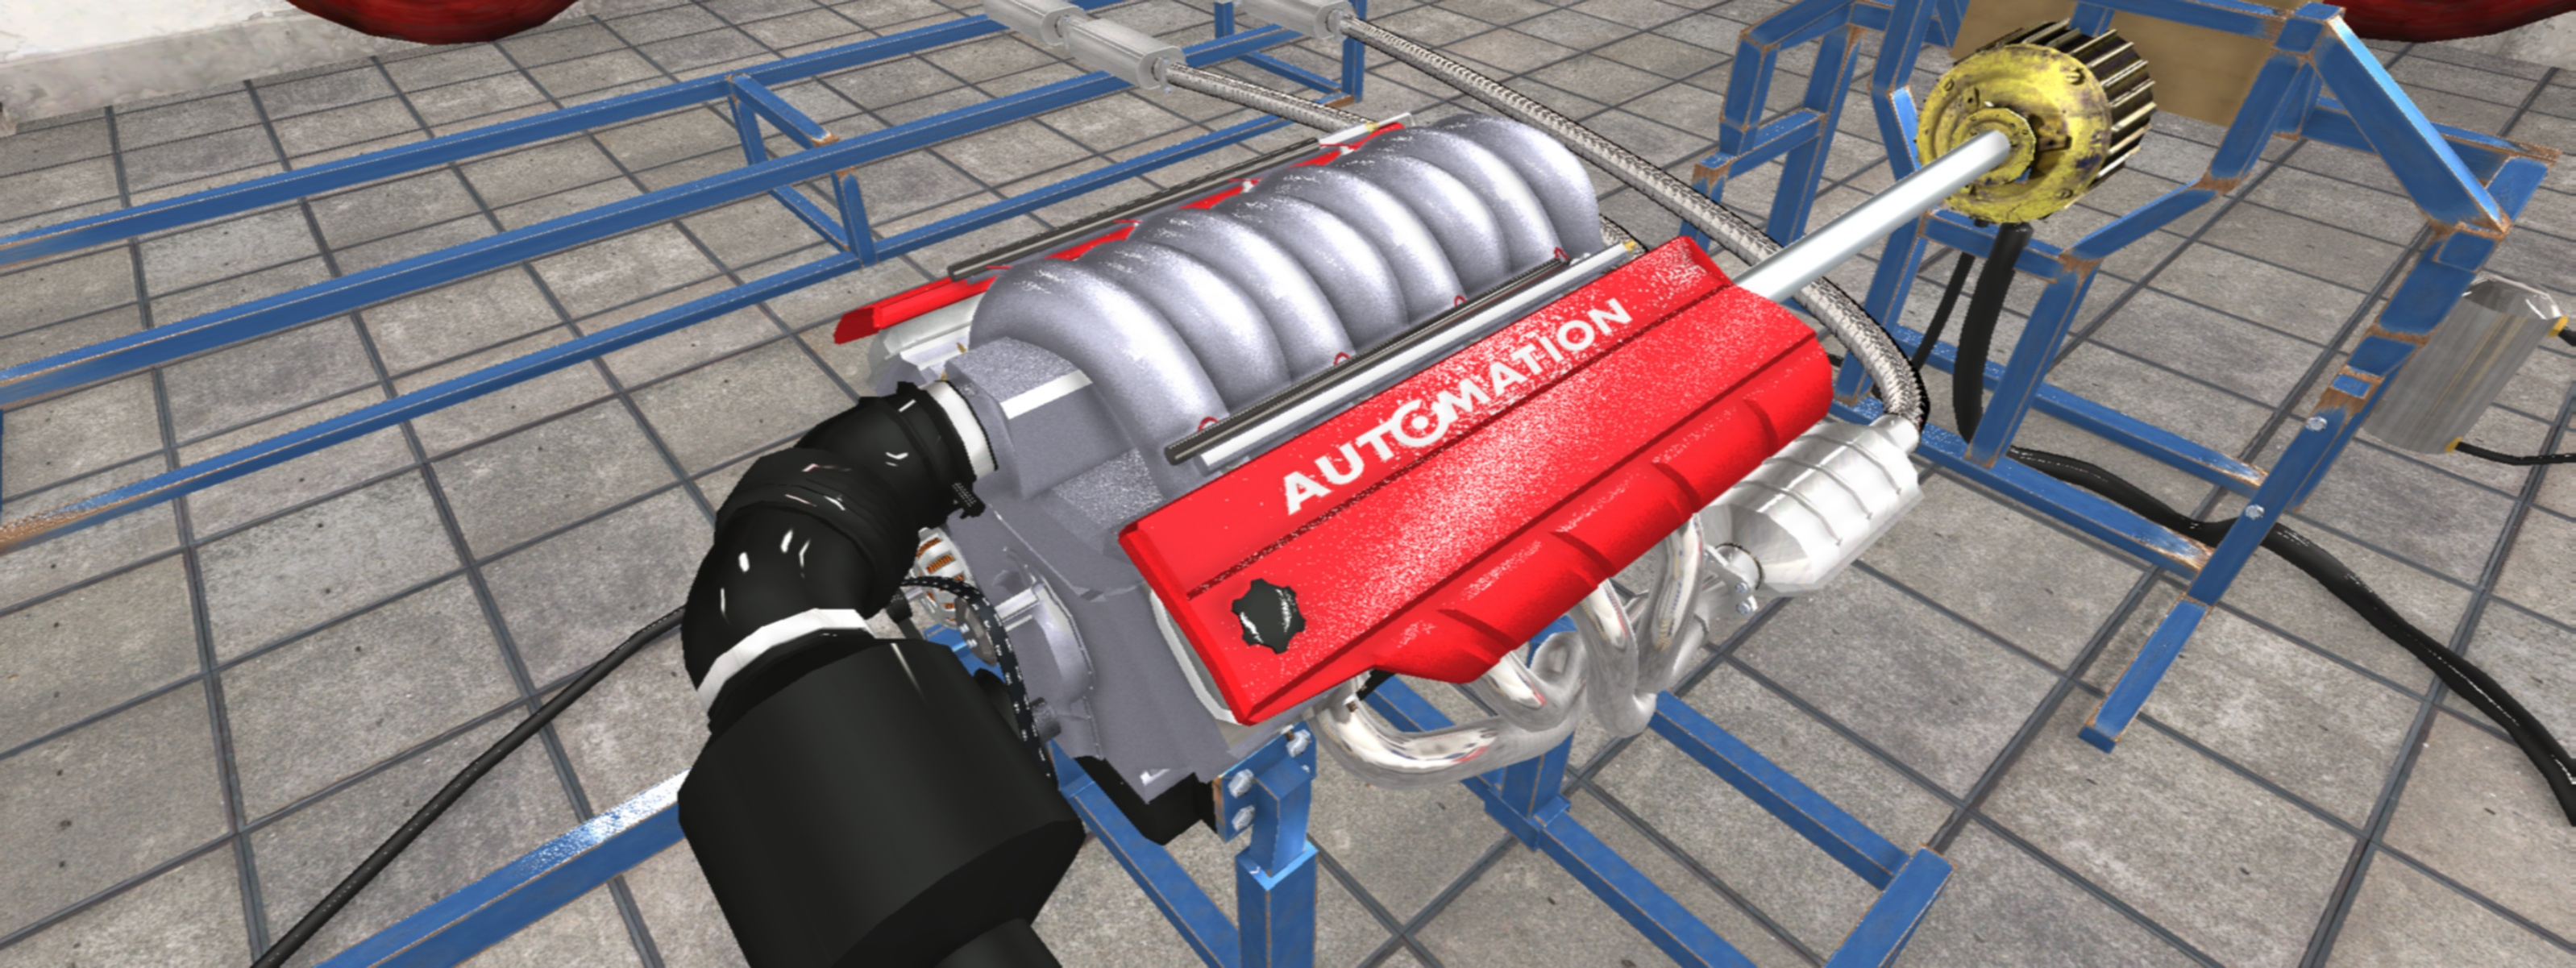 LS1 Style V8 image - Automation: The Car Company Tycoon Game - Mod DB